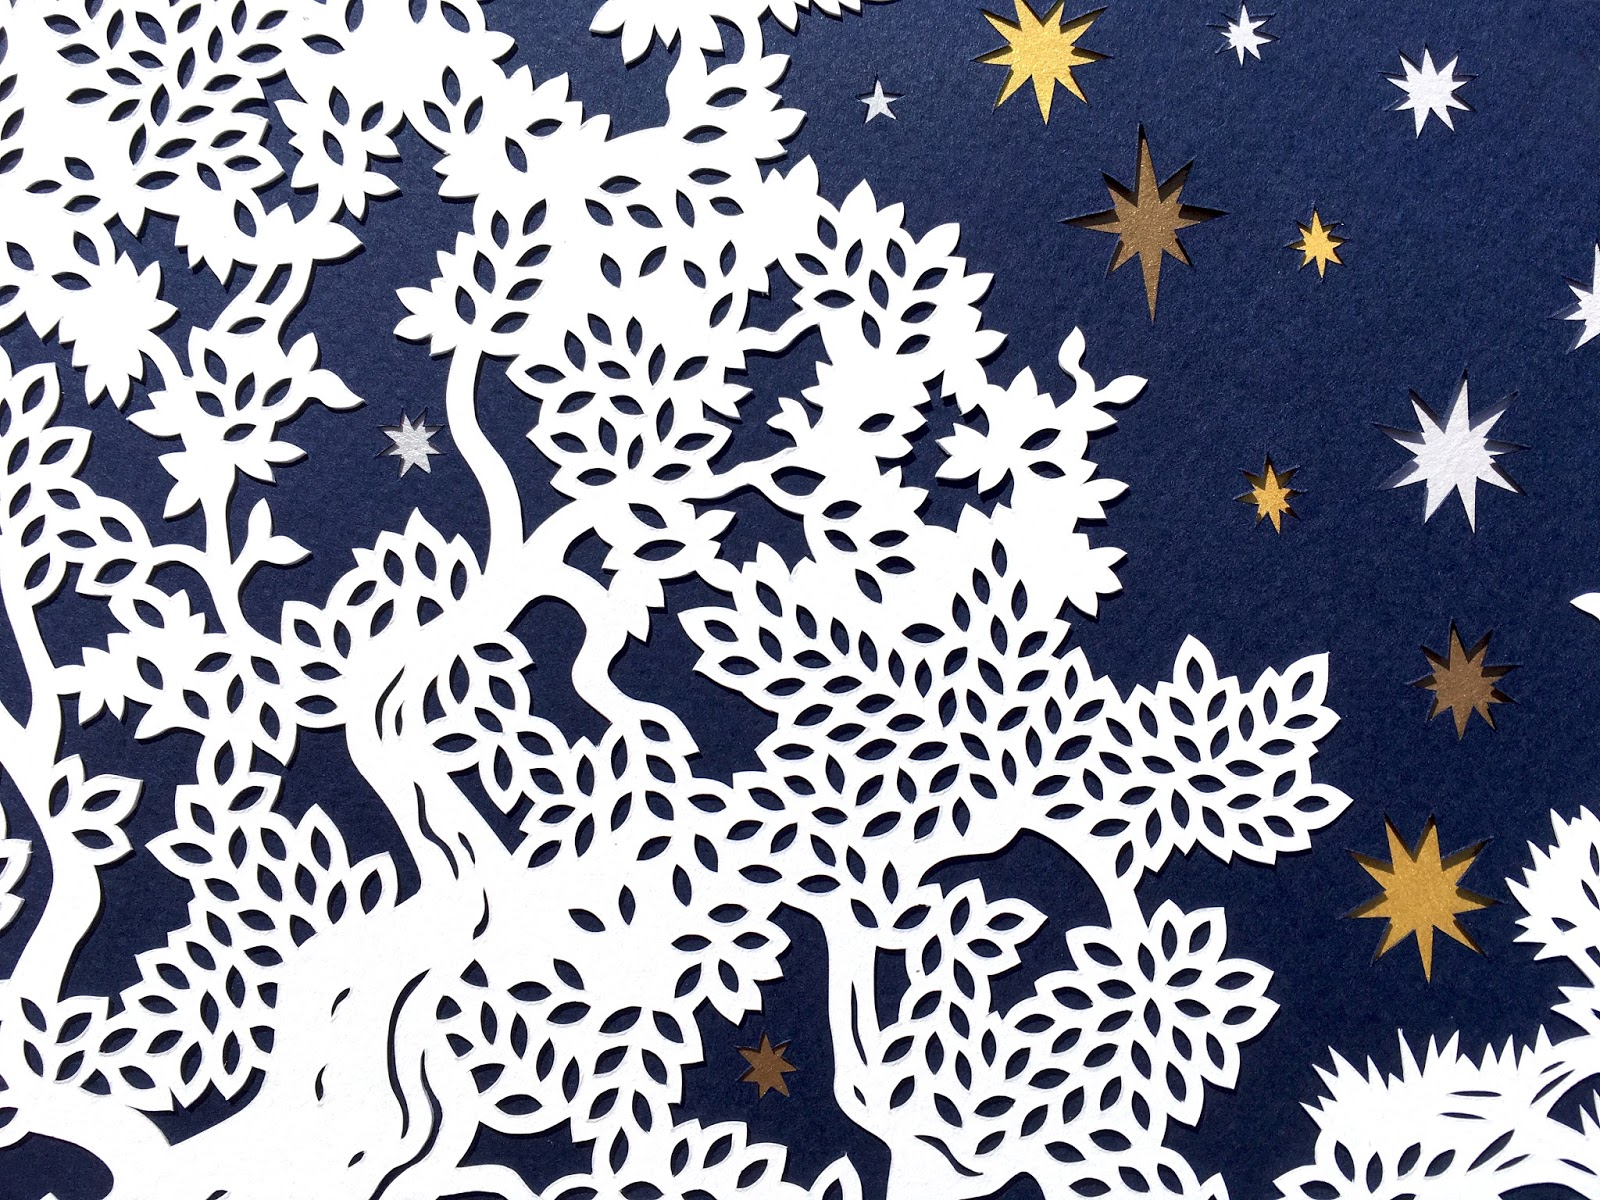 papercut ketubah detail shot of starry night design by Naomi Shiek. Papercut tree and stars